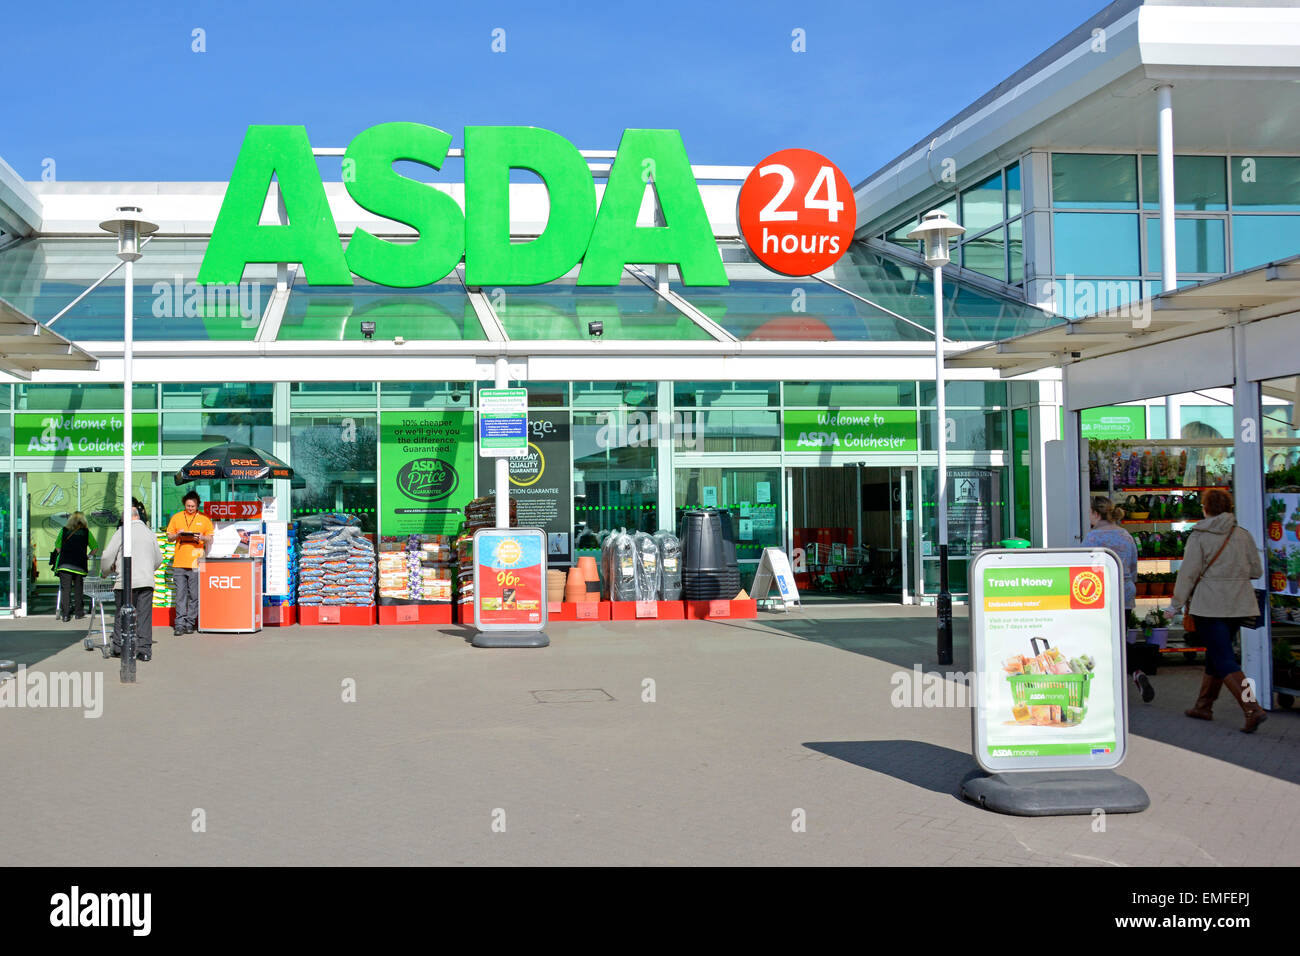 colouring books for adults asda : Asda Supermarket Store Entrance And 24 Hour Sign Stock Image